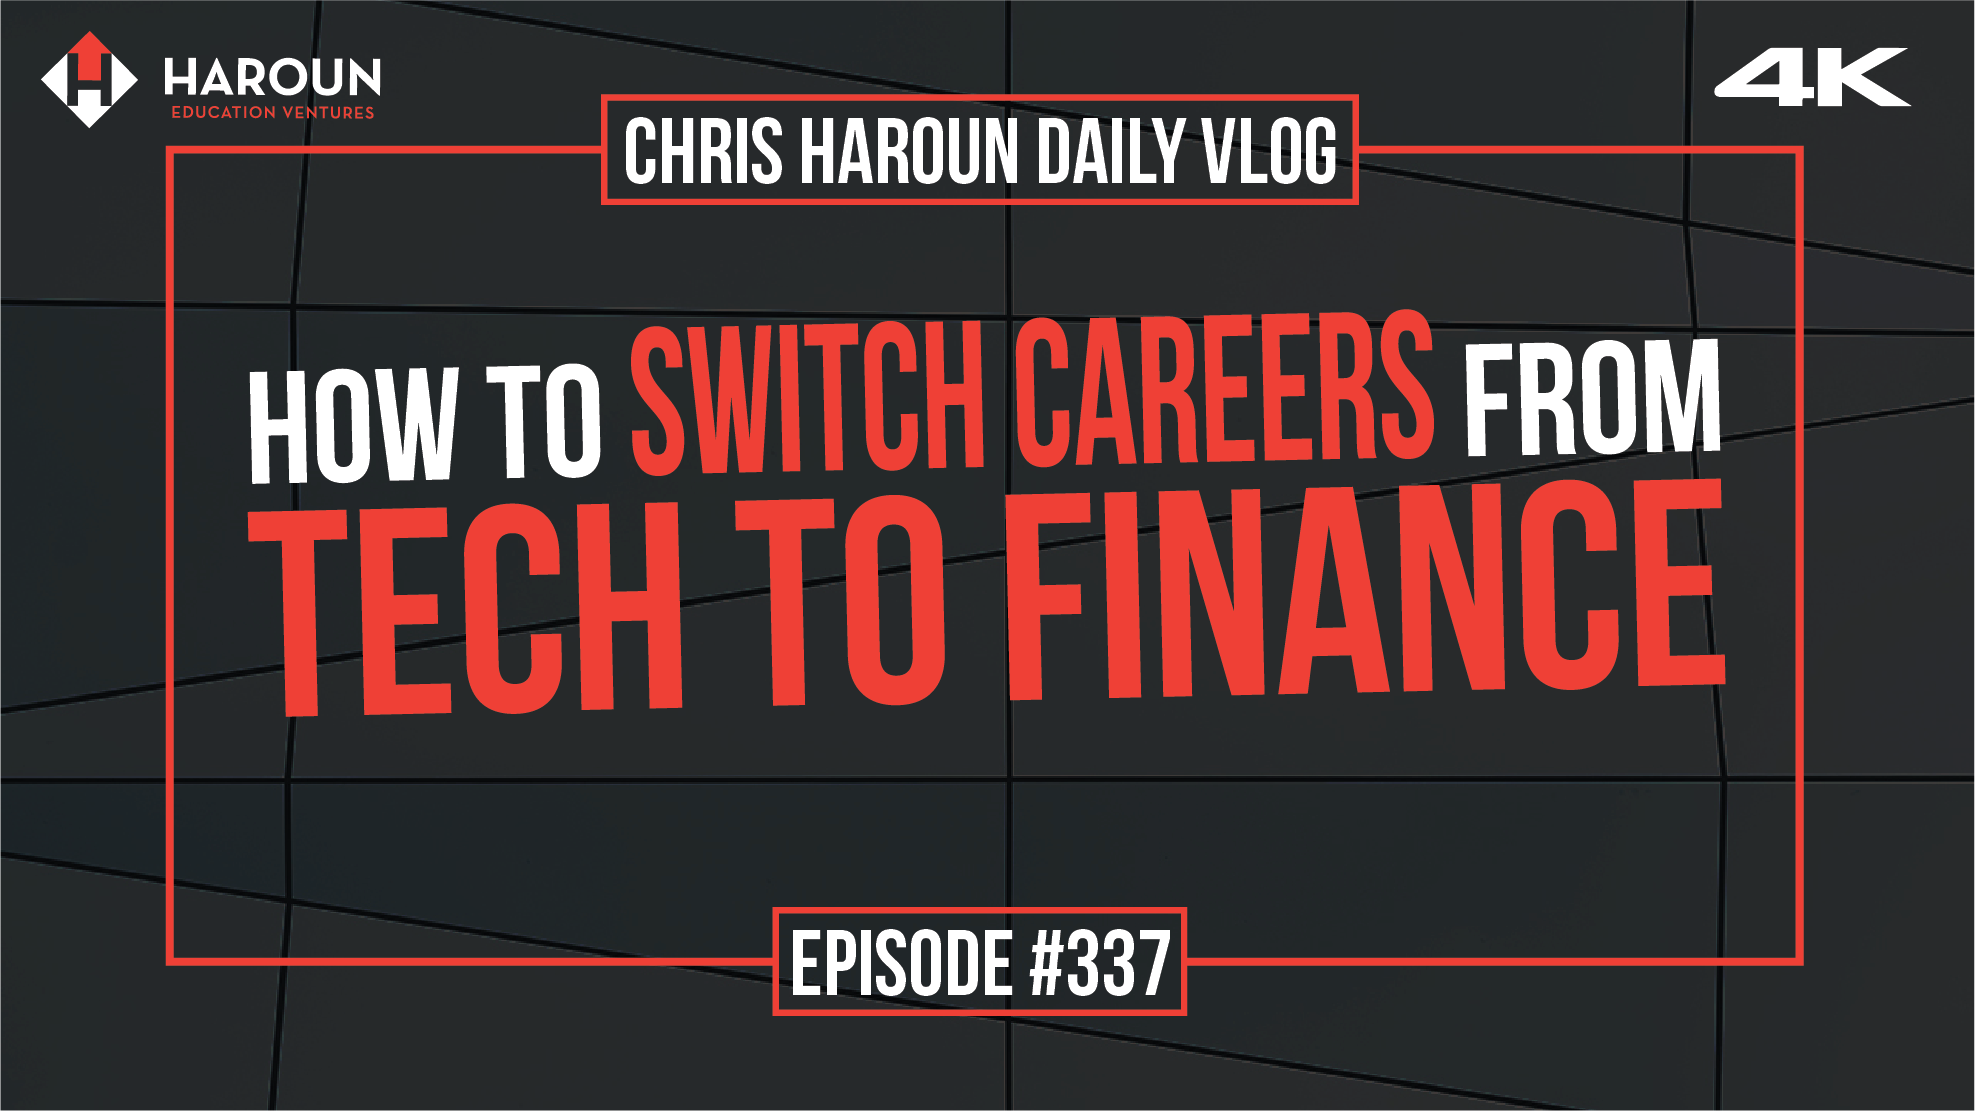 VLOG_337_7_3_2019_How to Switch Careers from Tech to Finance.png